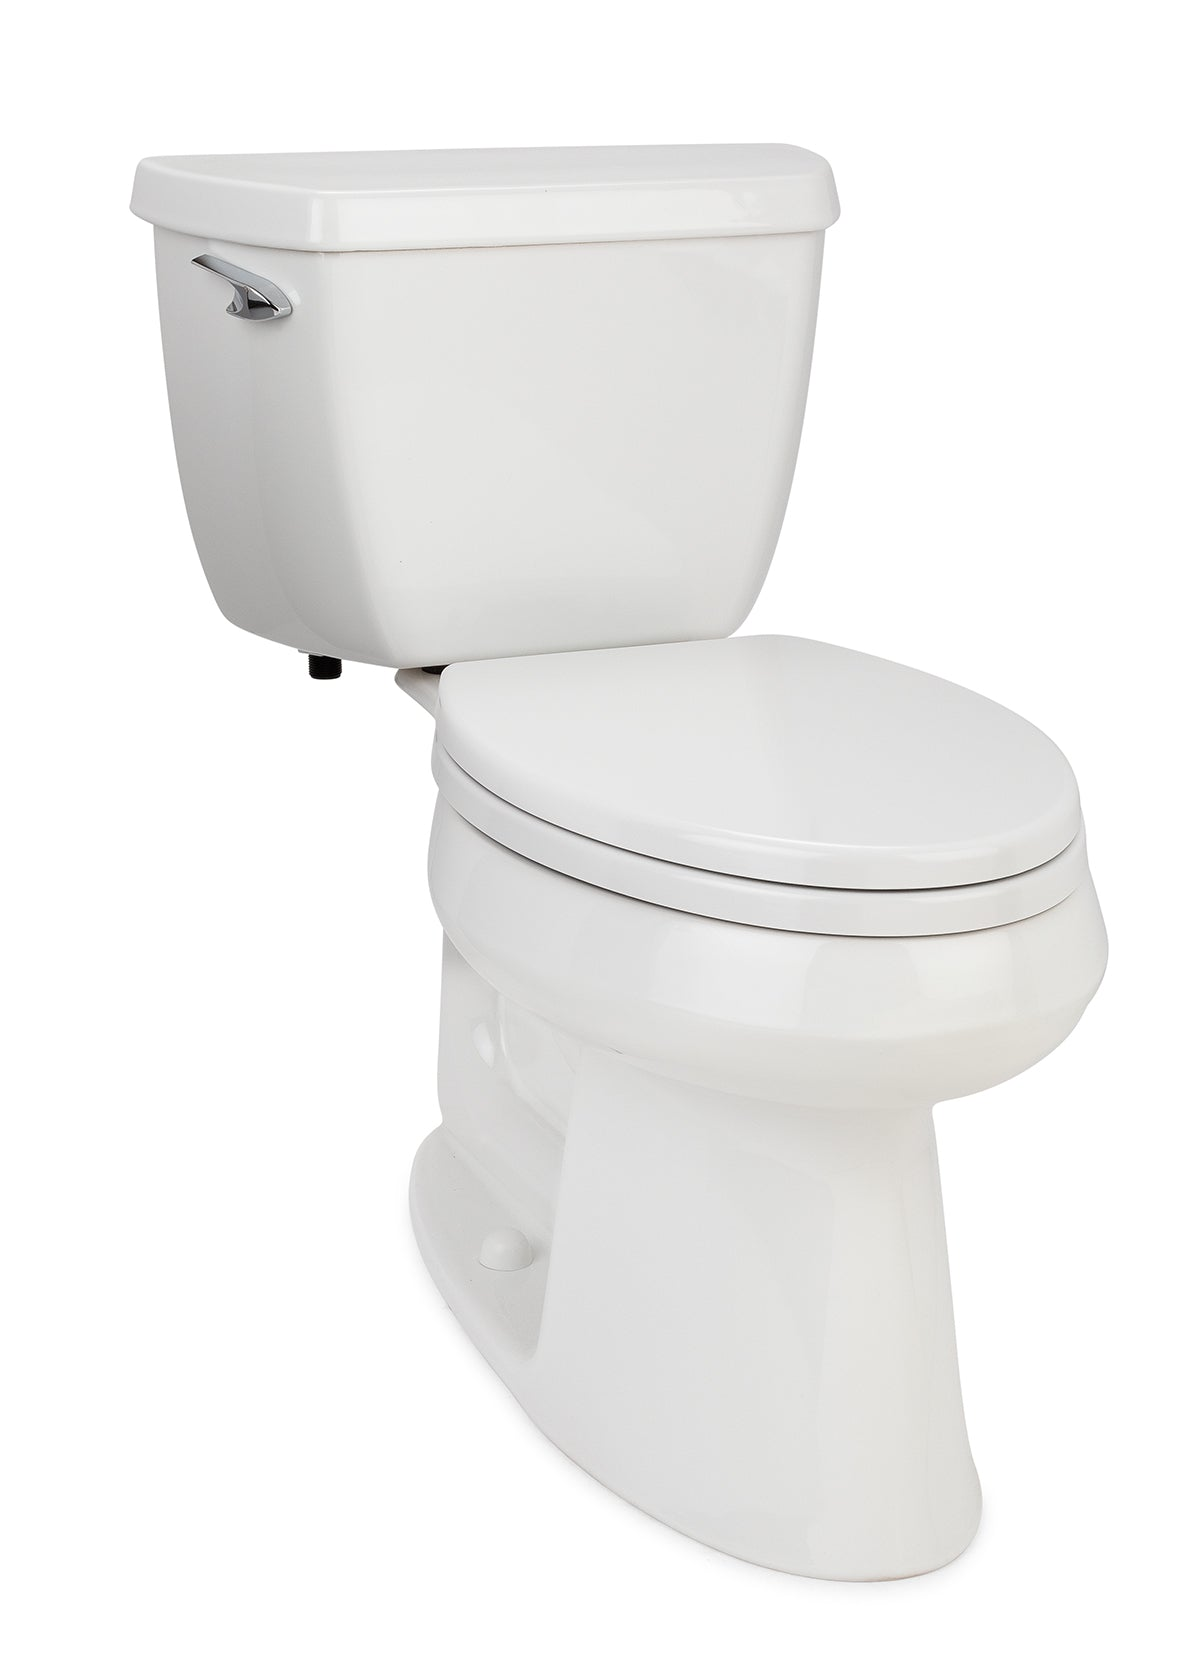 Bath Royale Luxury Toilet Seats And Bathroom Accessories